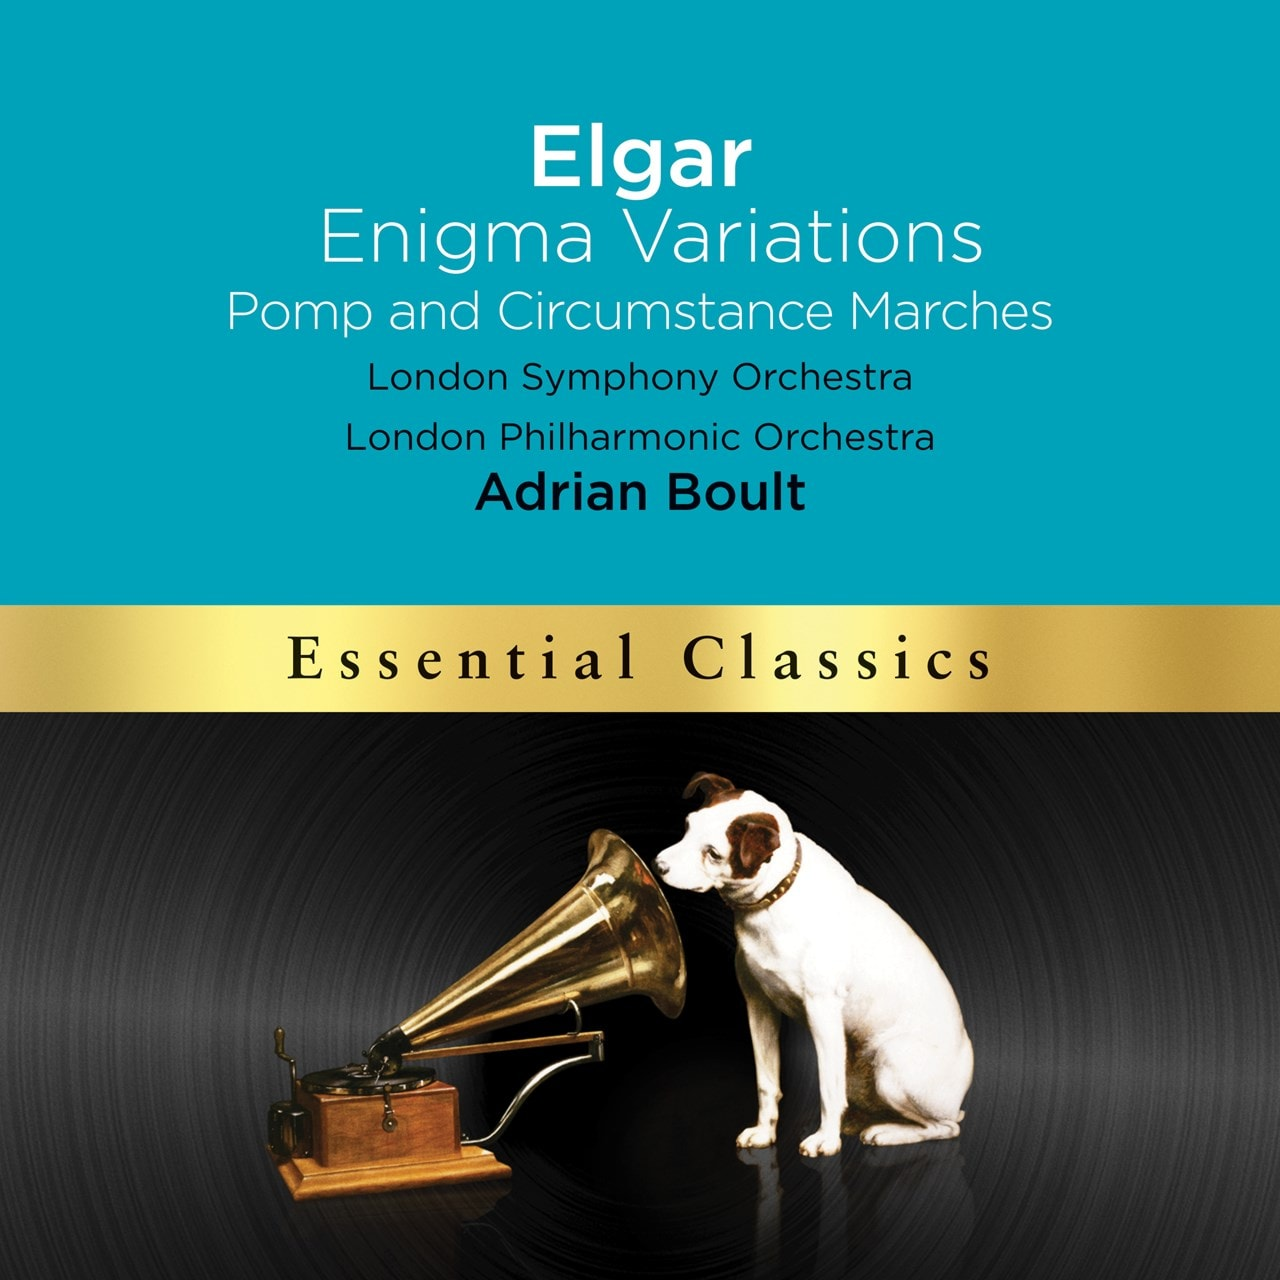 Elgar: Enigma Variations/Pomp and Circumstance Marches - 1